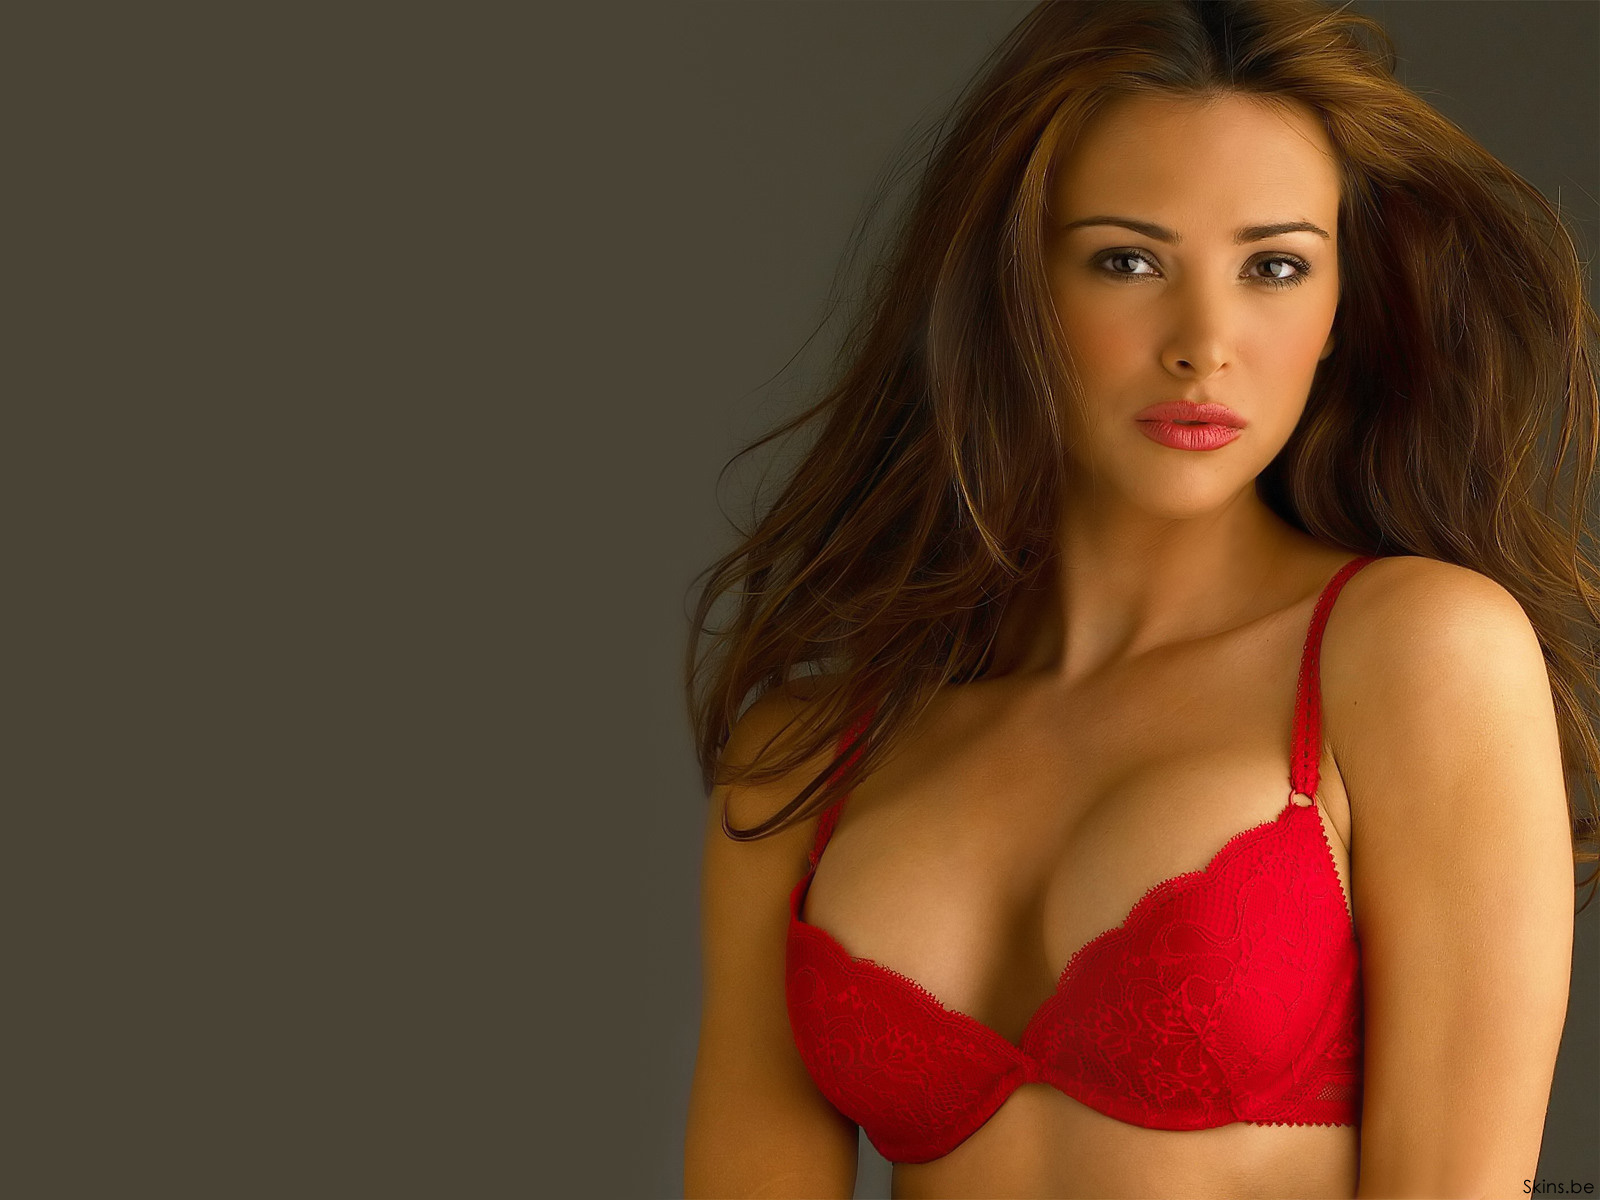 Hollywood Actresses Hot Body